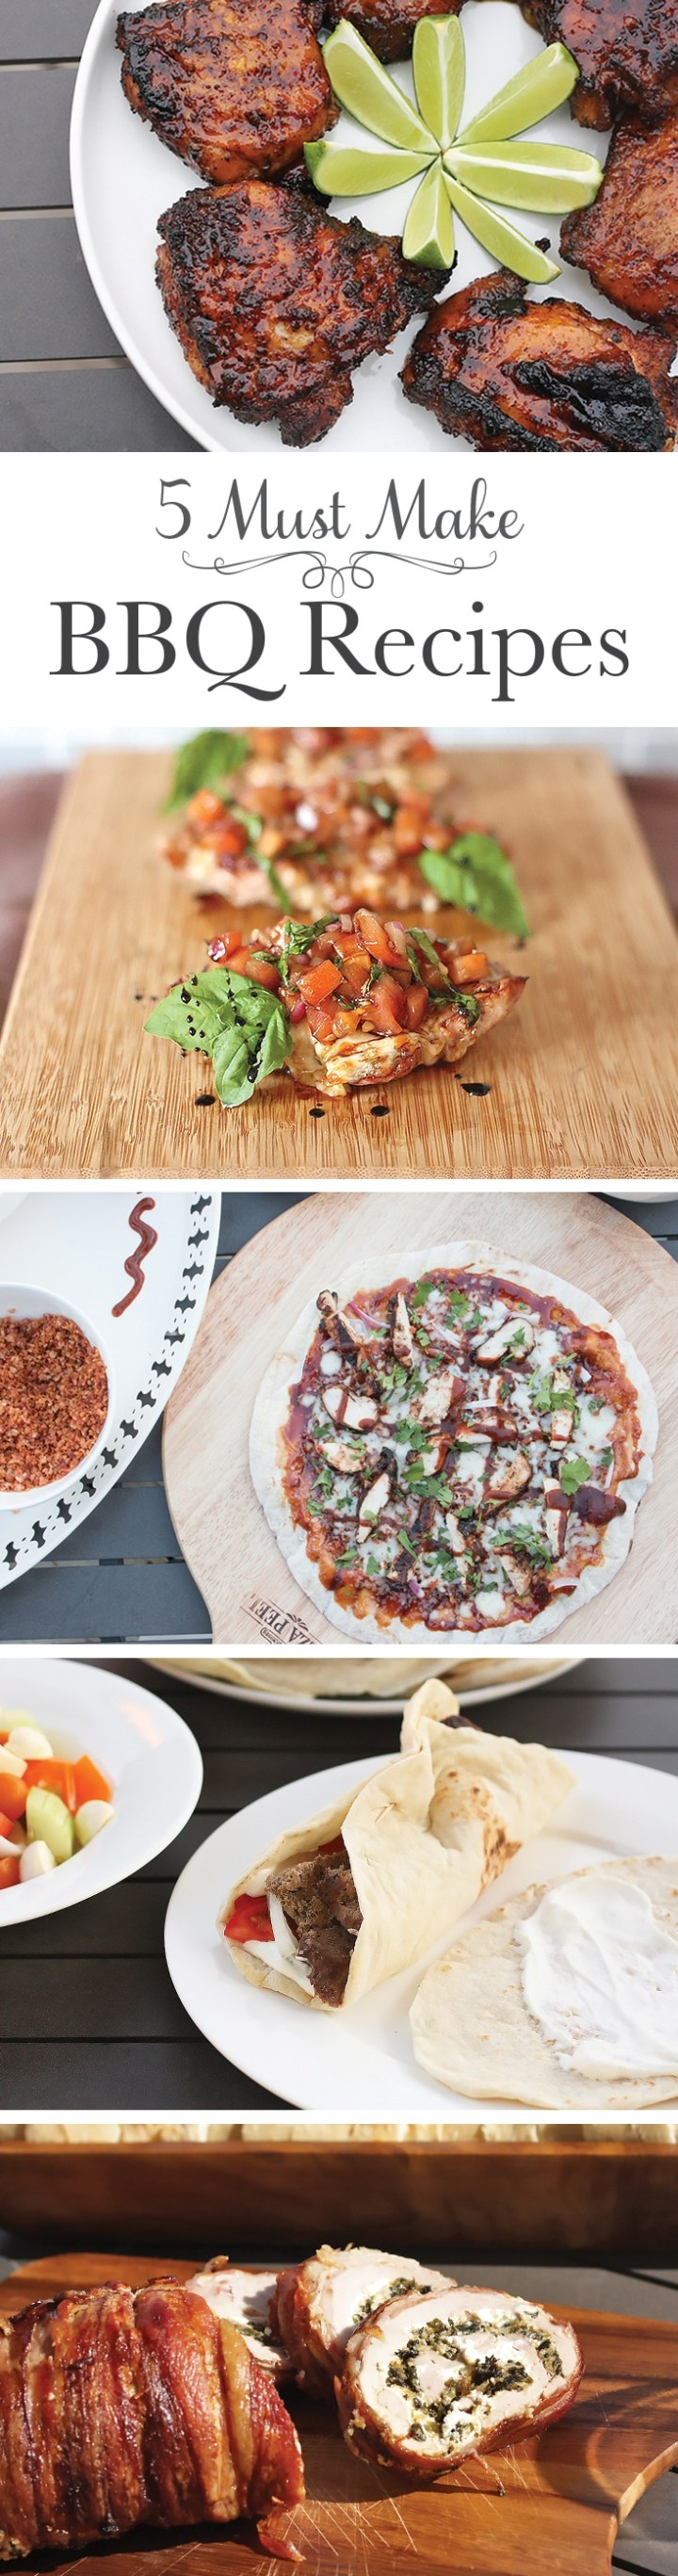 My top five BBQ recipes that no summer should go without: Ancho Chili and Tequila Glazed BBQ Chicken Thighs, Homemade Gyros, Brushetta Topped BBQ Pork Chops, BBQ Chicken Pizza (bonus: the ultimate guide to pizza on the grill), and Spinach and Cheese Stuffed Bacon Wrapped Pork Tenderloin.